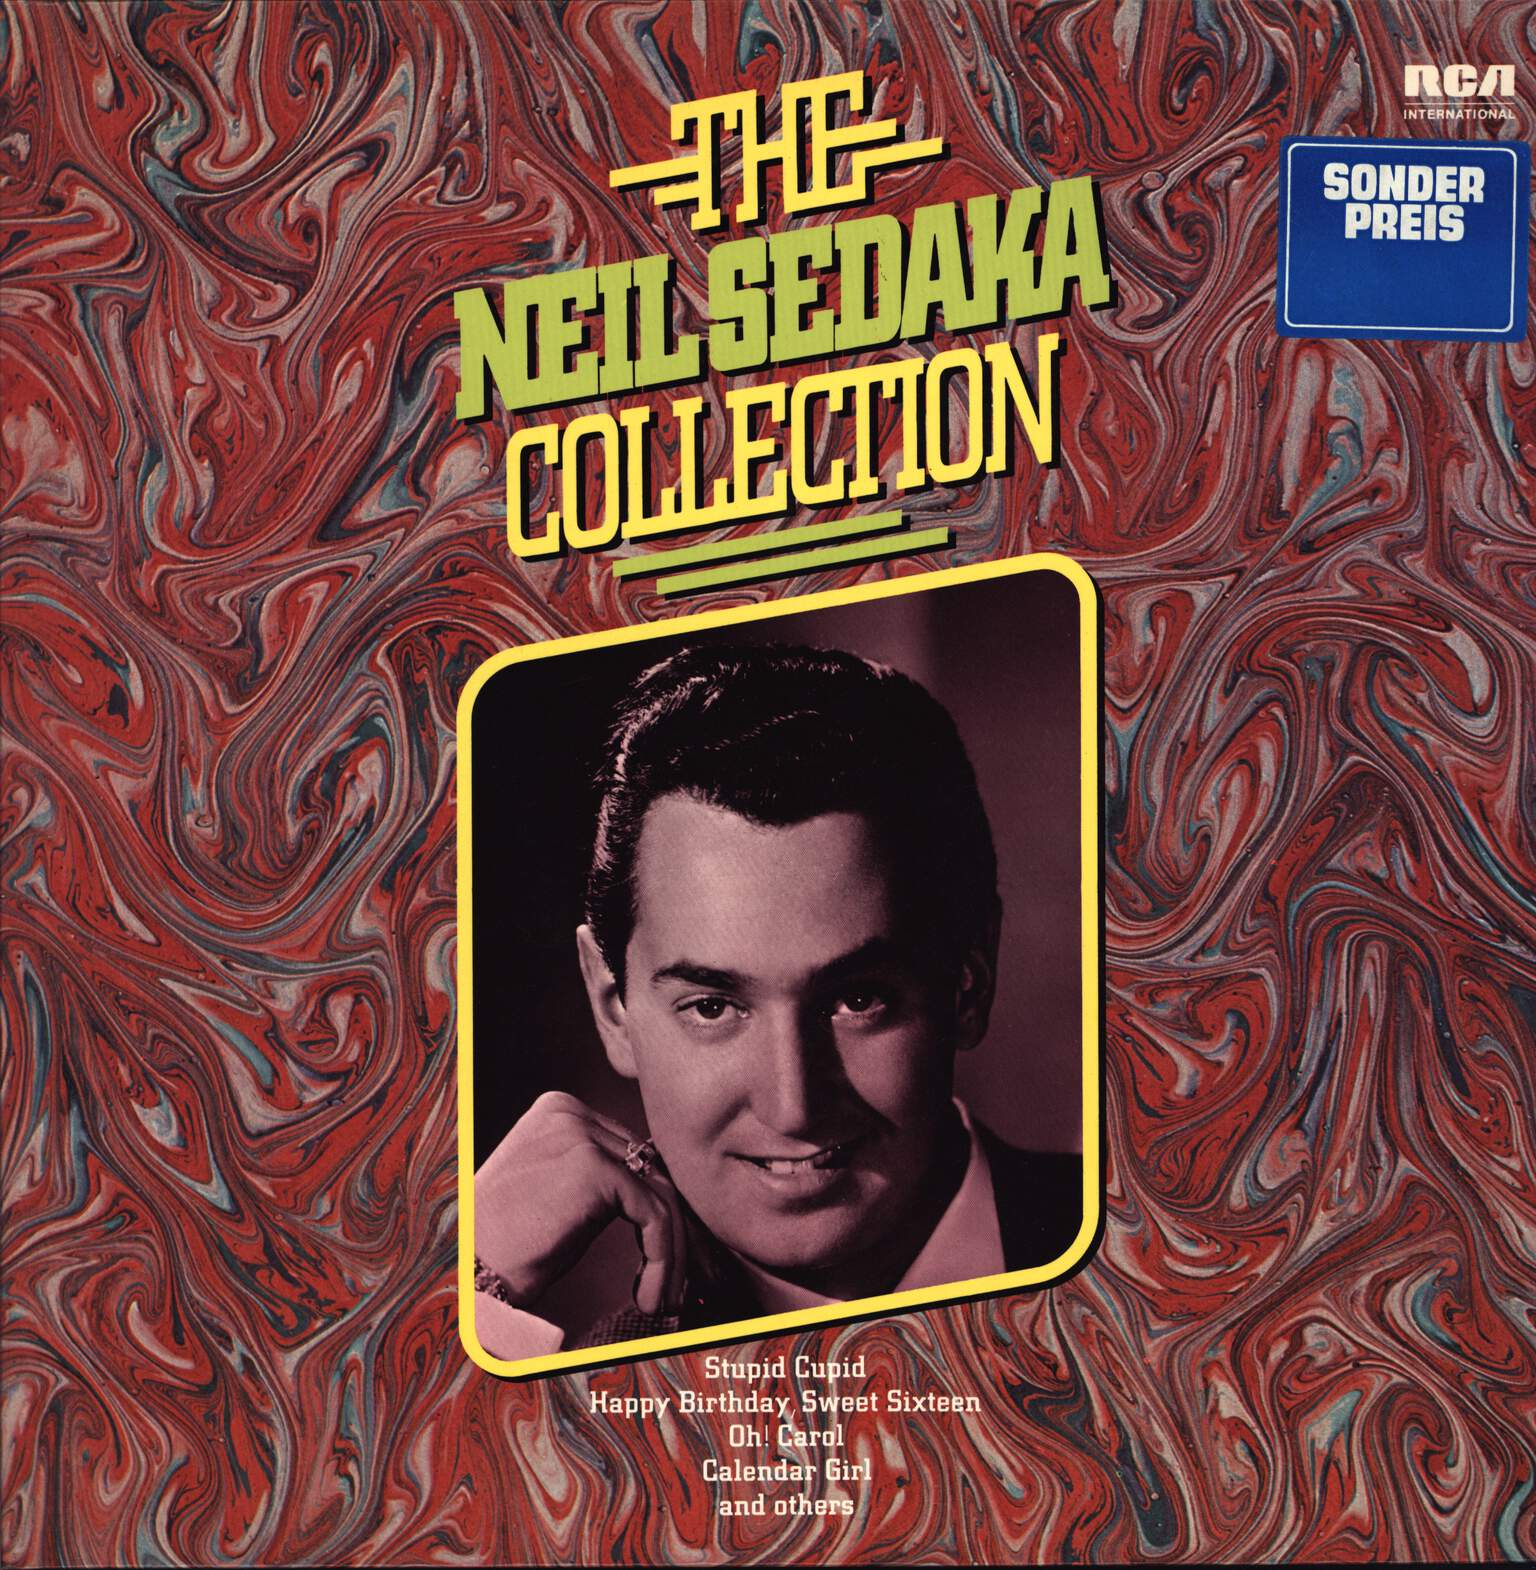 Neil Sedaka: The Neil Sedaka Collection, LP (Vinyl)